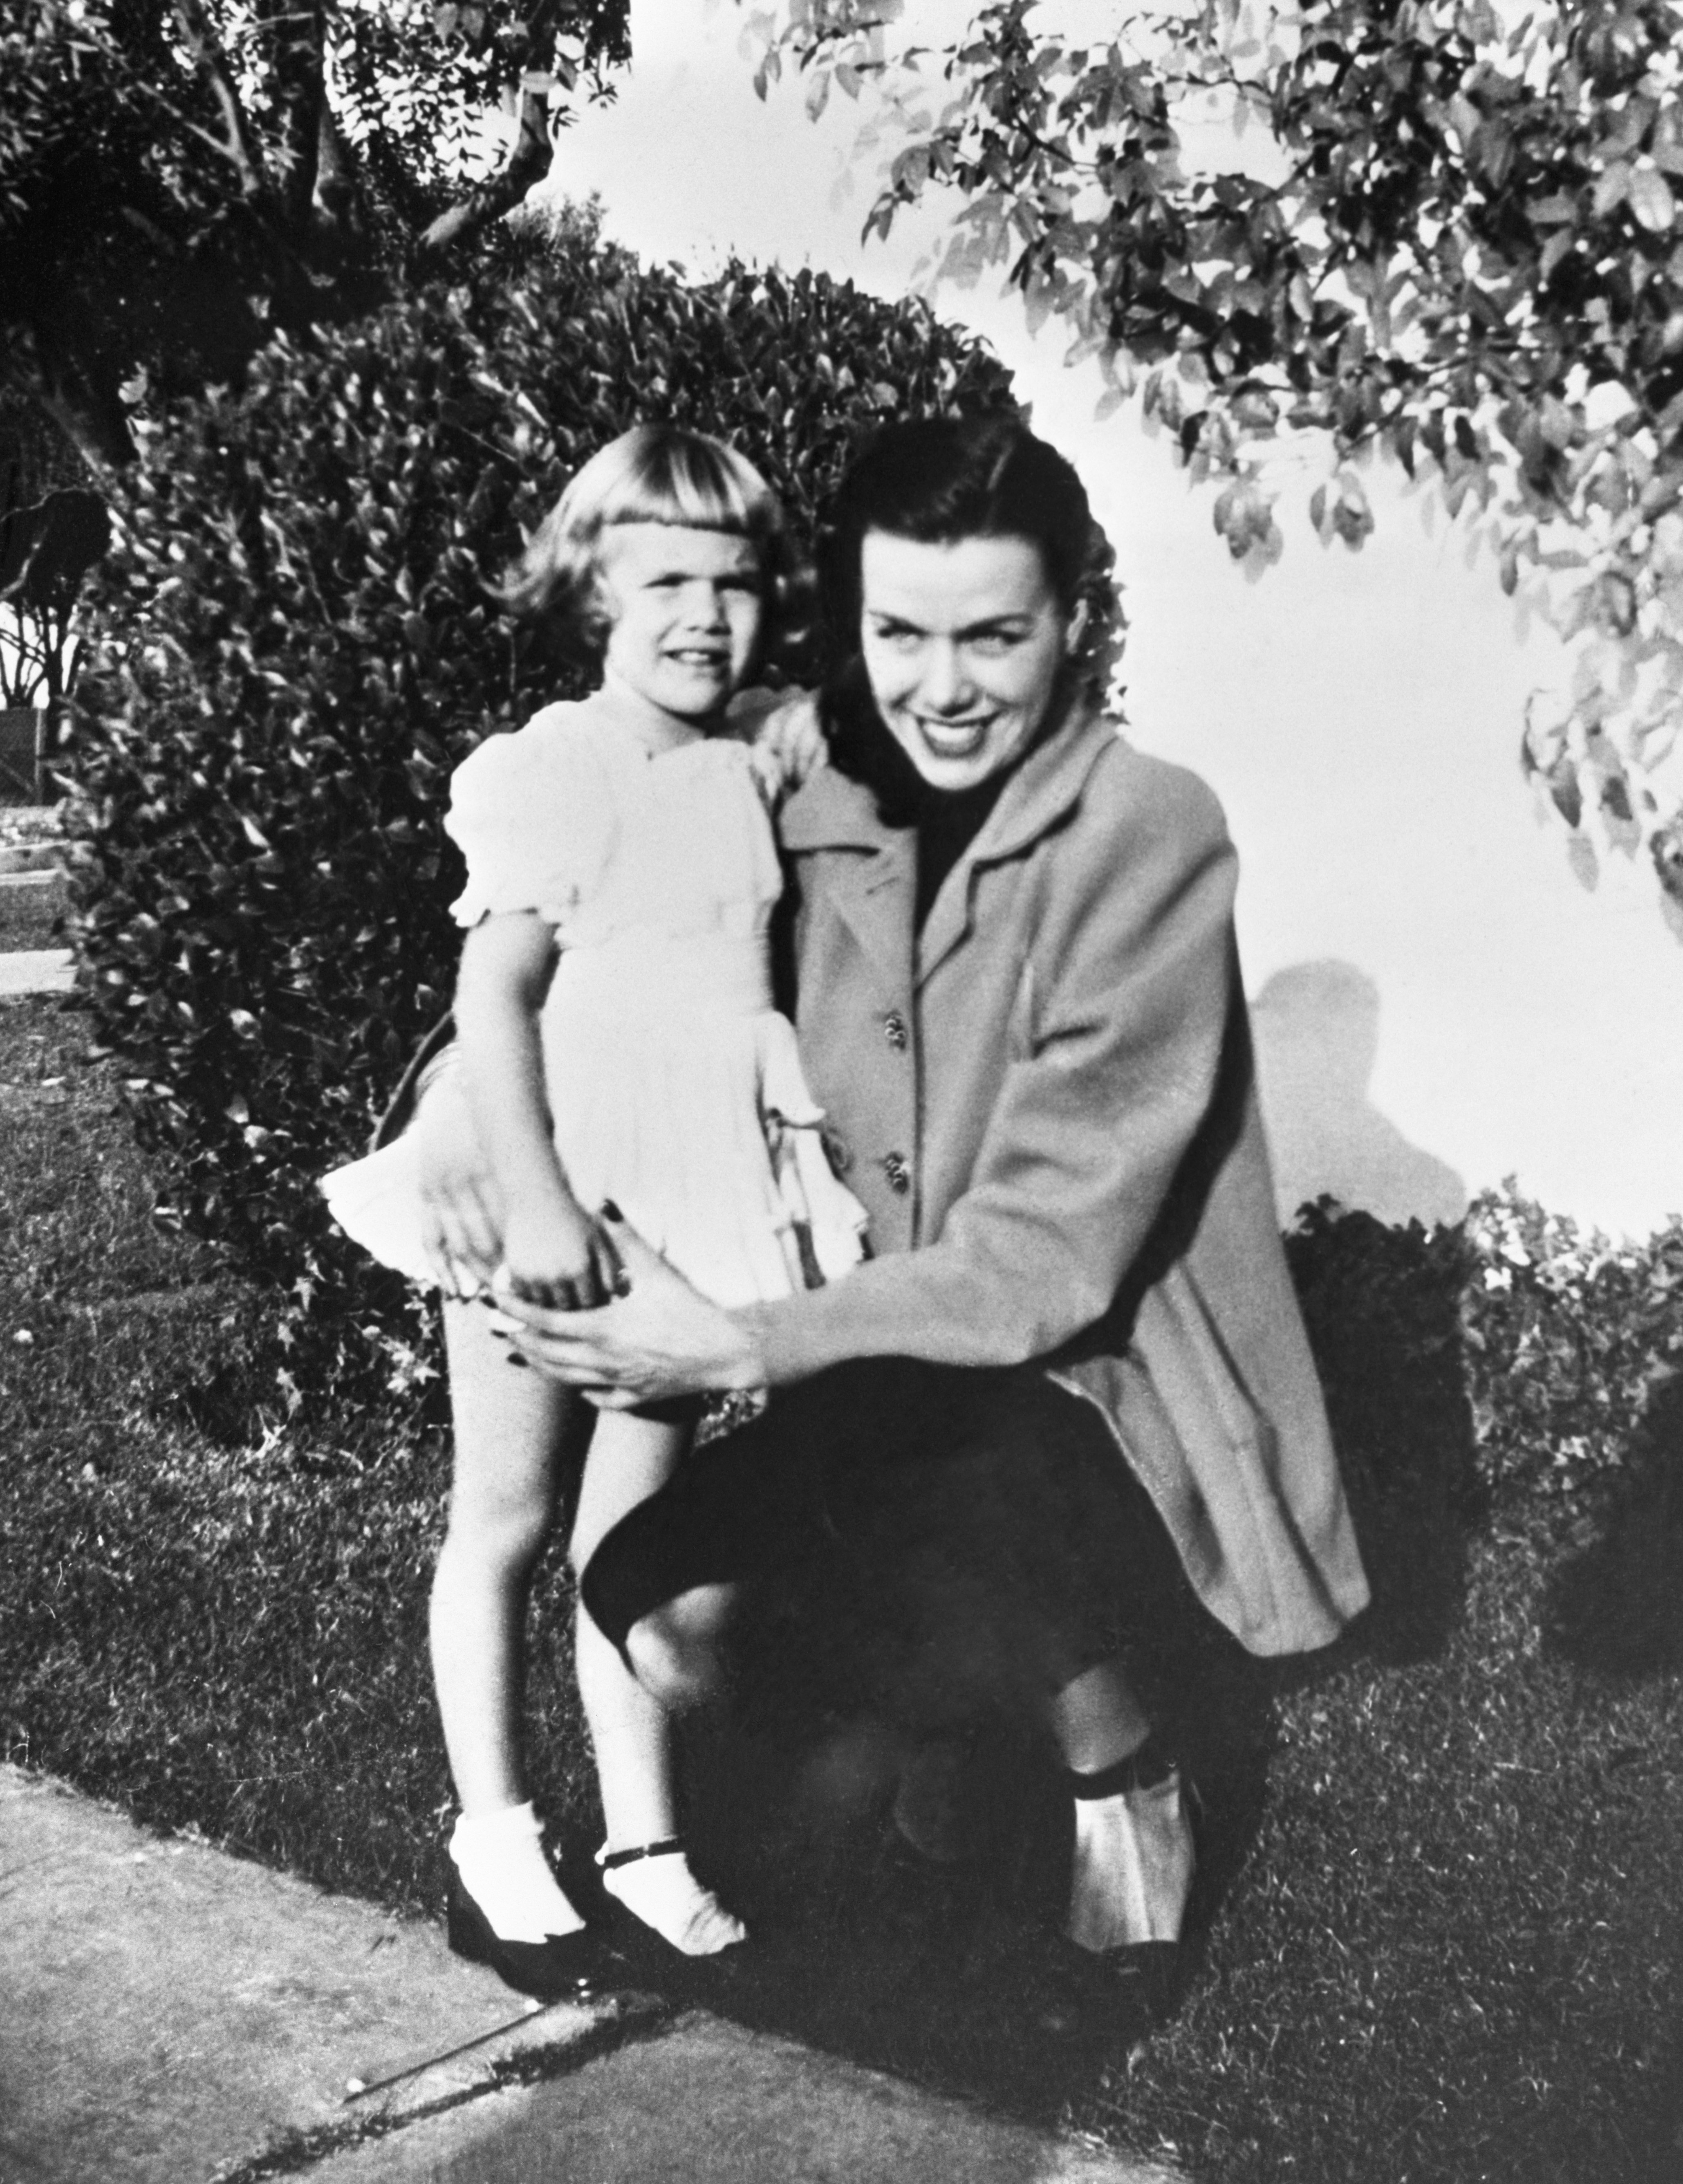 Jean Spangler and her daughter, Christine, on October 1st 1949, six days before Spangler's disappearance | Photo: Getty Images